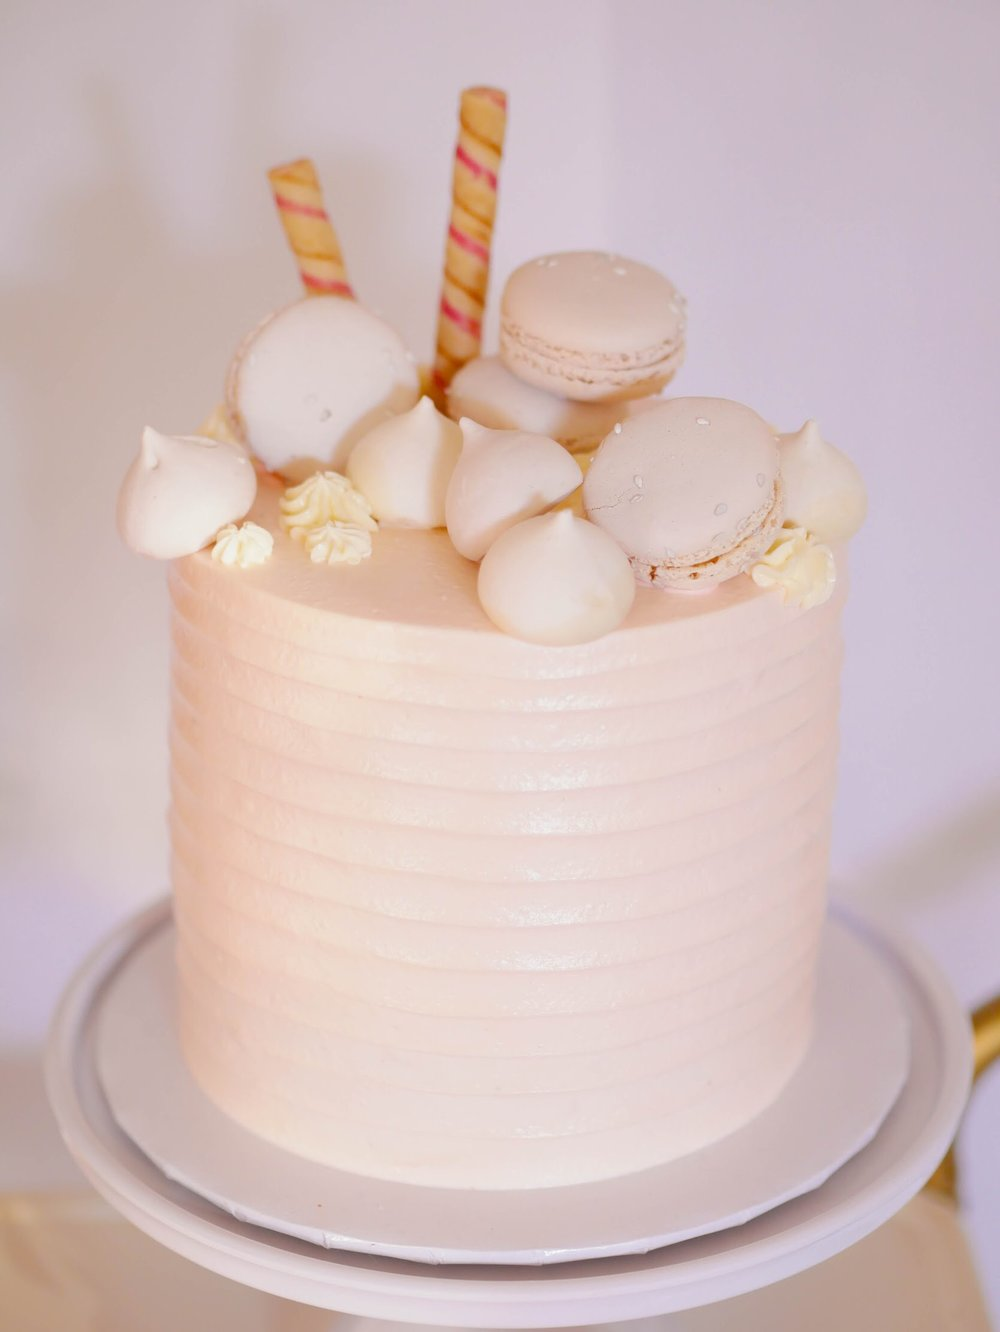 Love the idea of using other treats on top of a cake, it's so over the top!